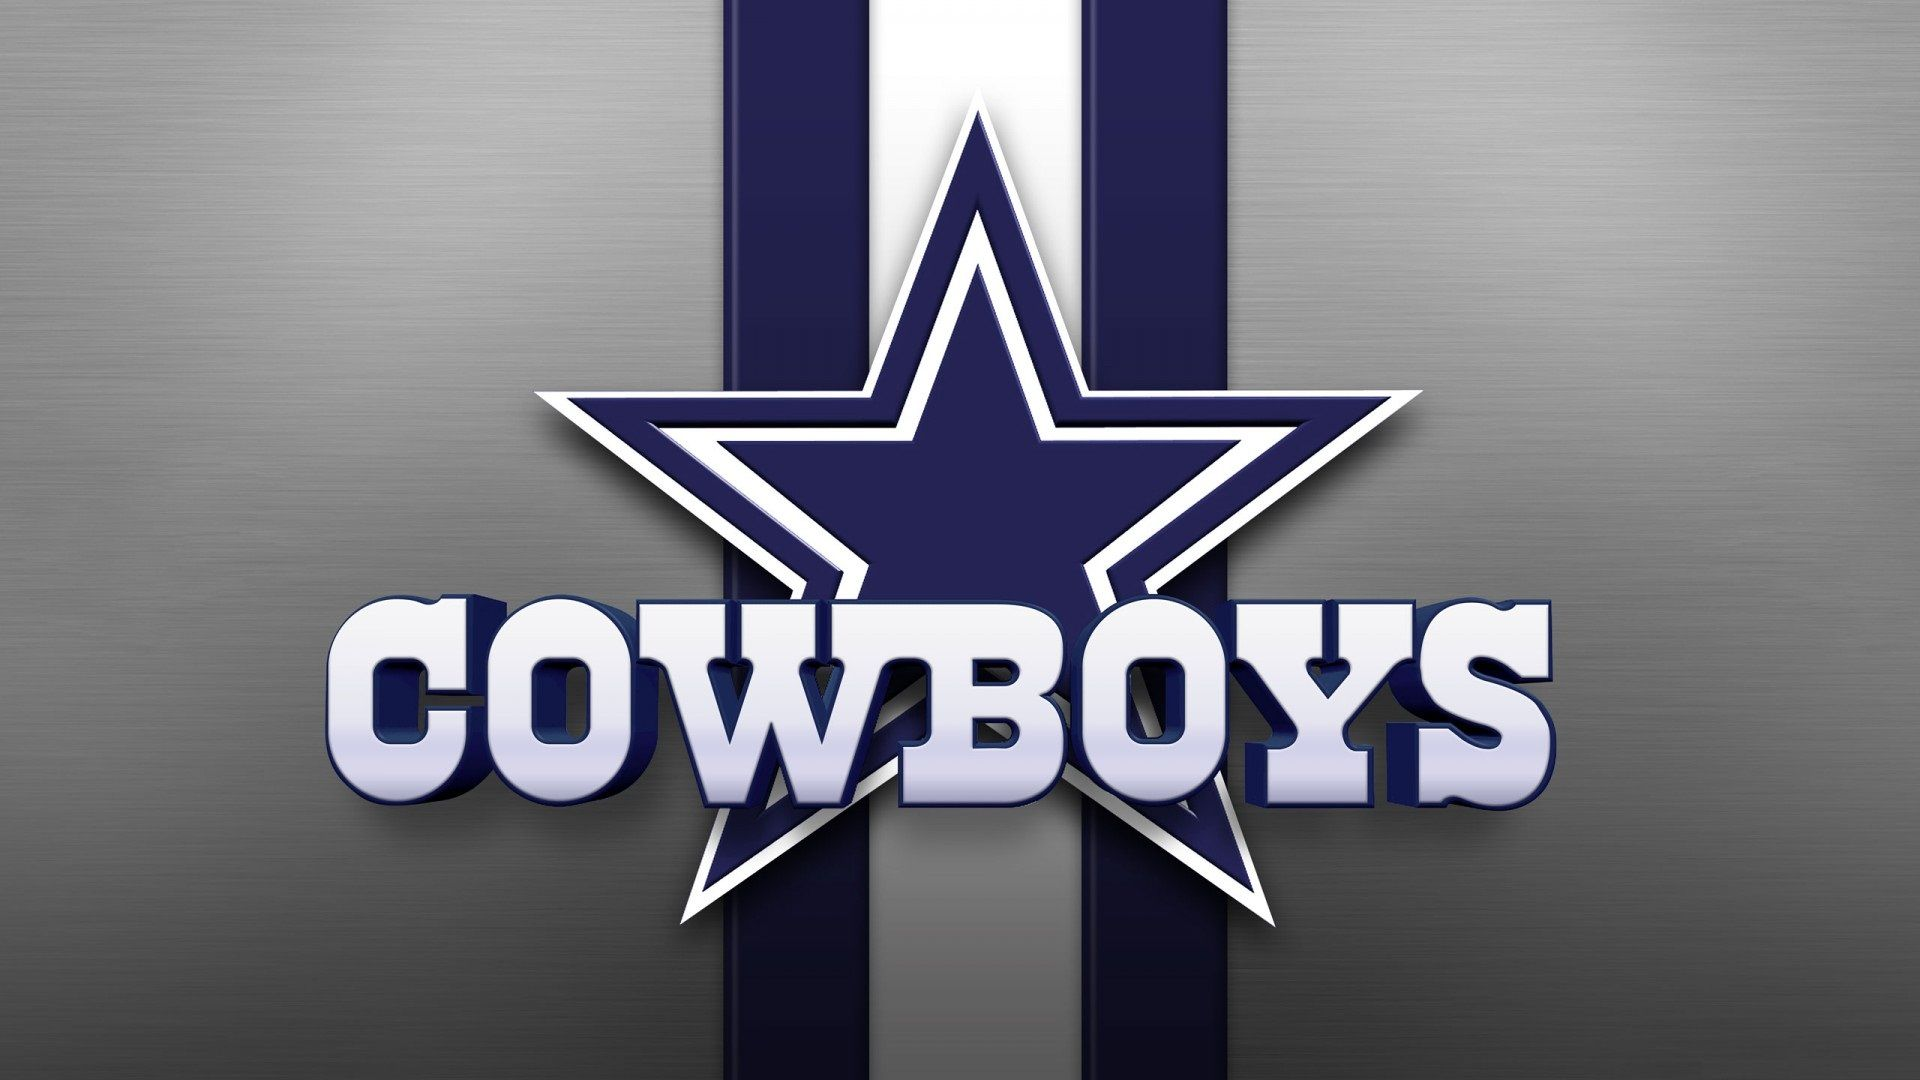 Some Tips For Installing the Perfect Cowboys Wallpaper Photo